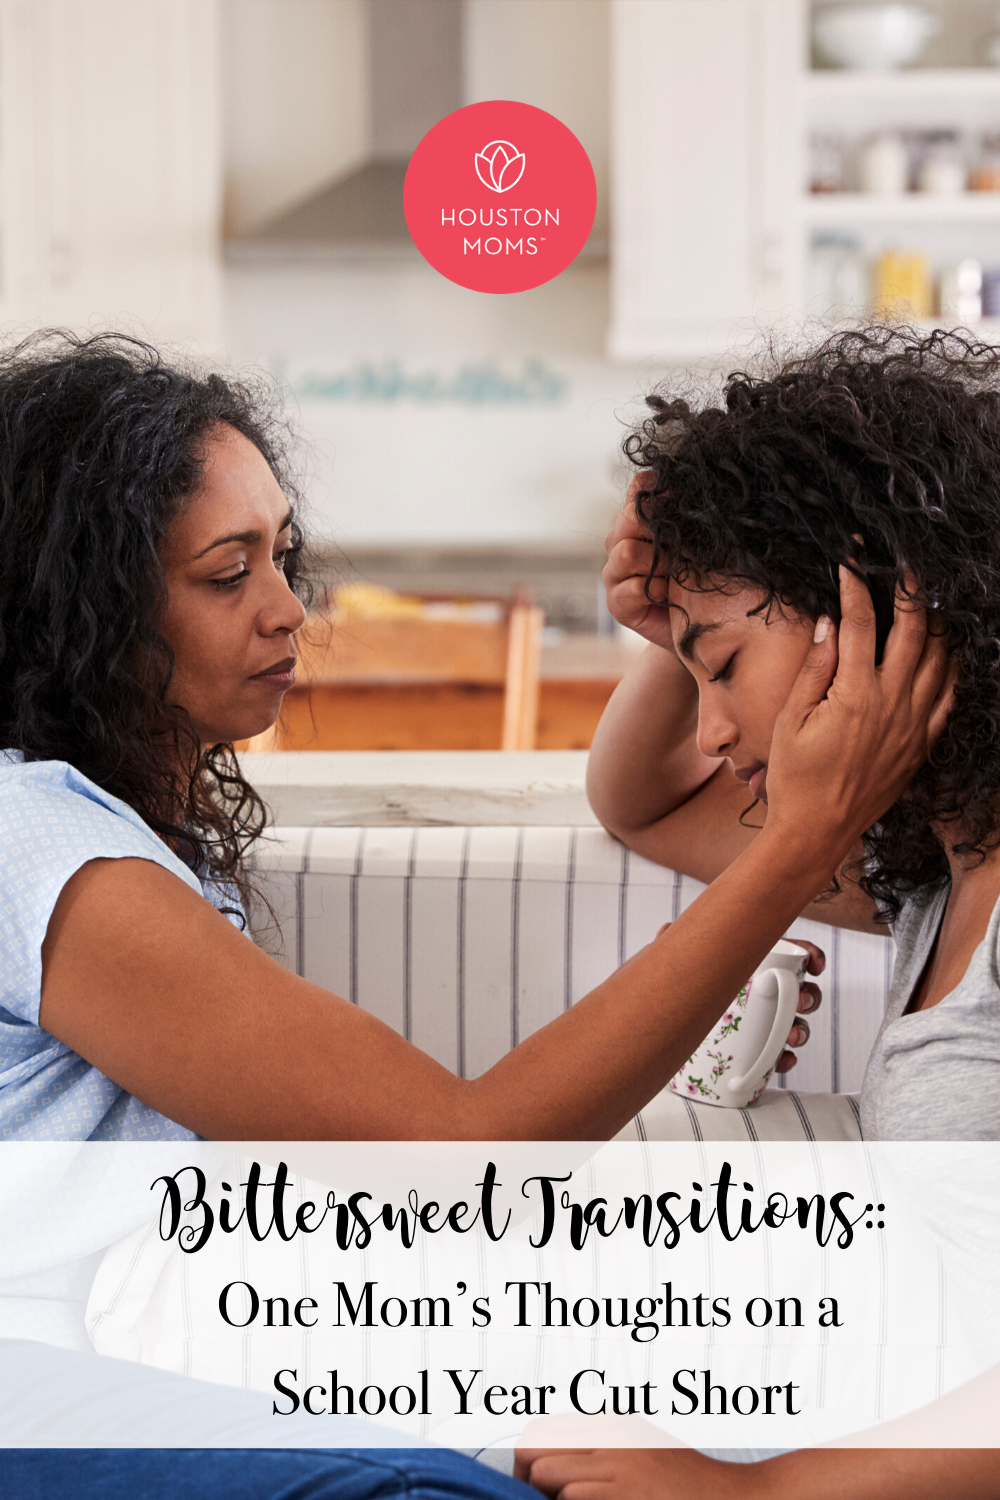 "Houston Moms ""Bittersweet Transitions:: One Mom's Thoughts on a School Year Cut Short"" #houstonmoms #houstonmomsblog #momsaroundhouston"